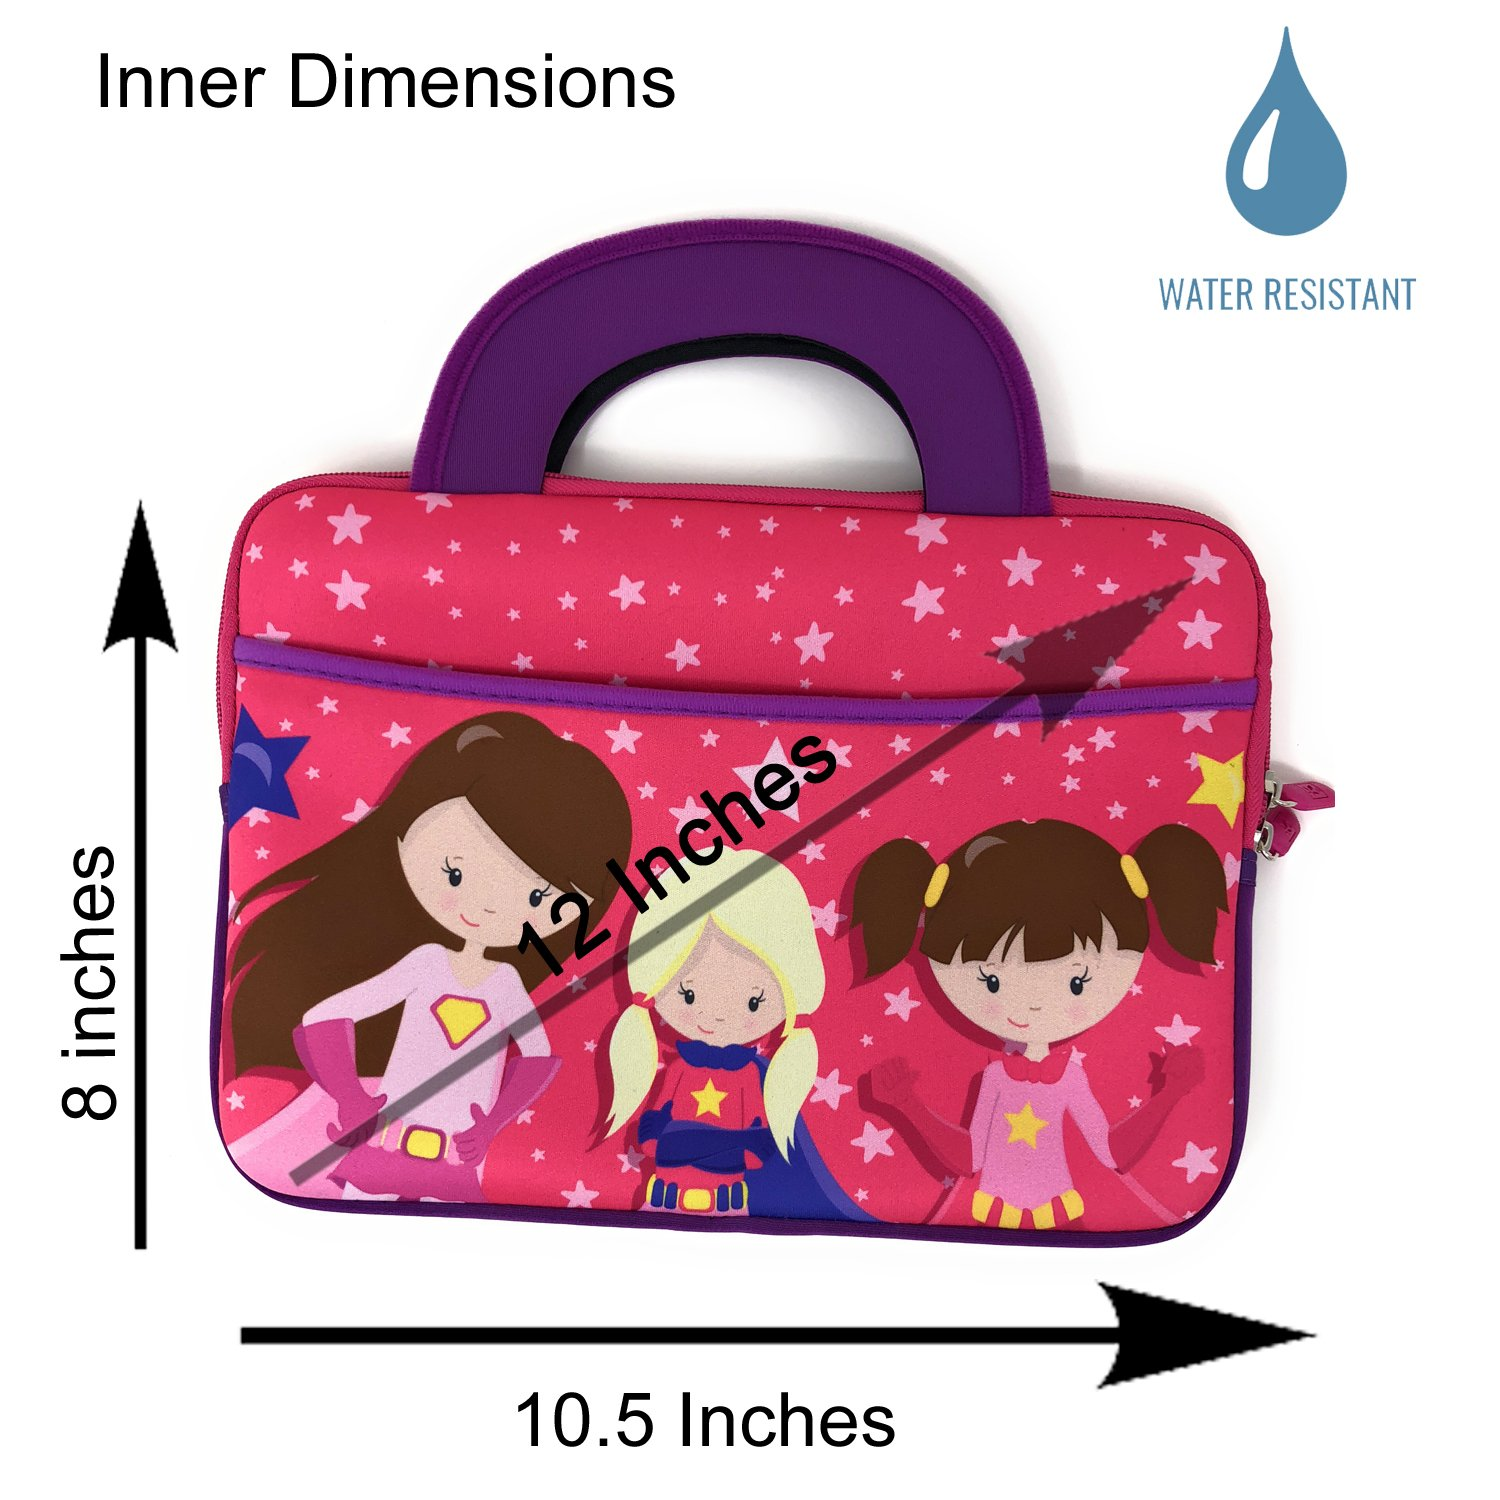 e7fb500603ec1 Travel Portable Kids Activity Bag Girl Boy for Amazon Fire HD 8 Kids  Edition Tablet Sleeve Handles Tote Neoprene Portfolio Case Accessory Pocket  New ...